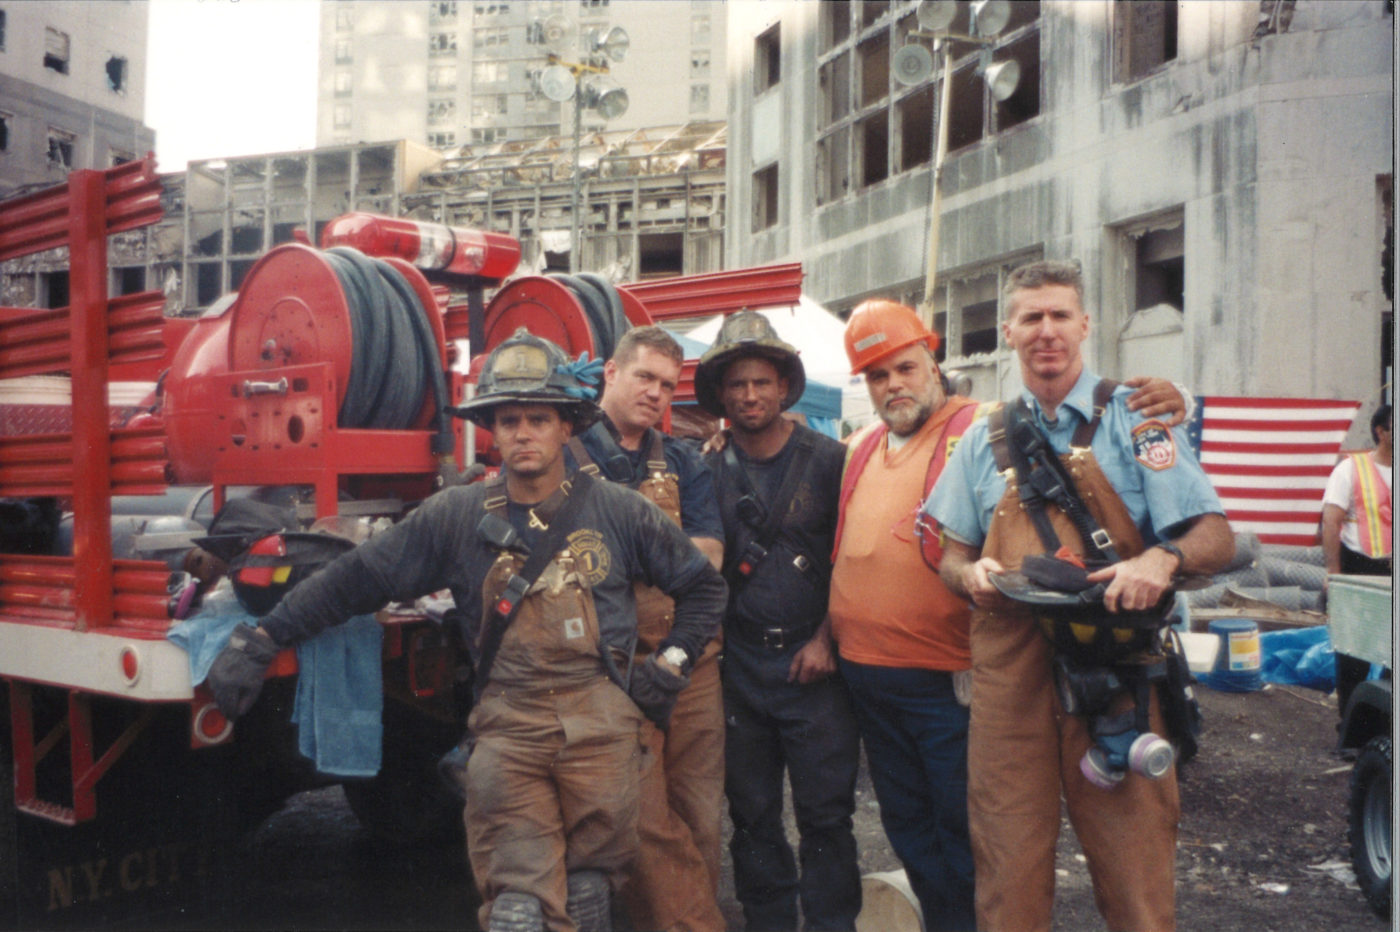 Unknown Fire Fighters and Workers Covered in Dust Stop for a Photo